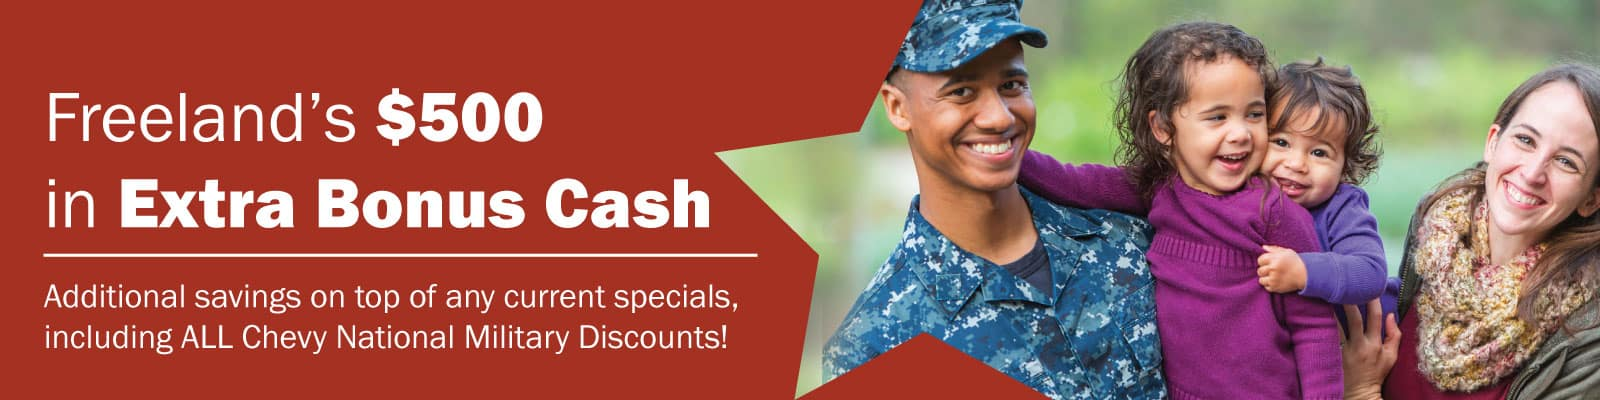 Freeland's Extra Bonus Cash Military Discount